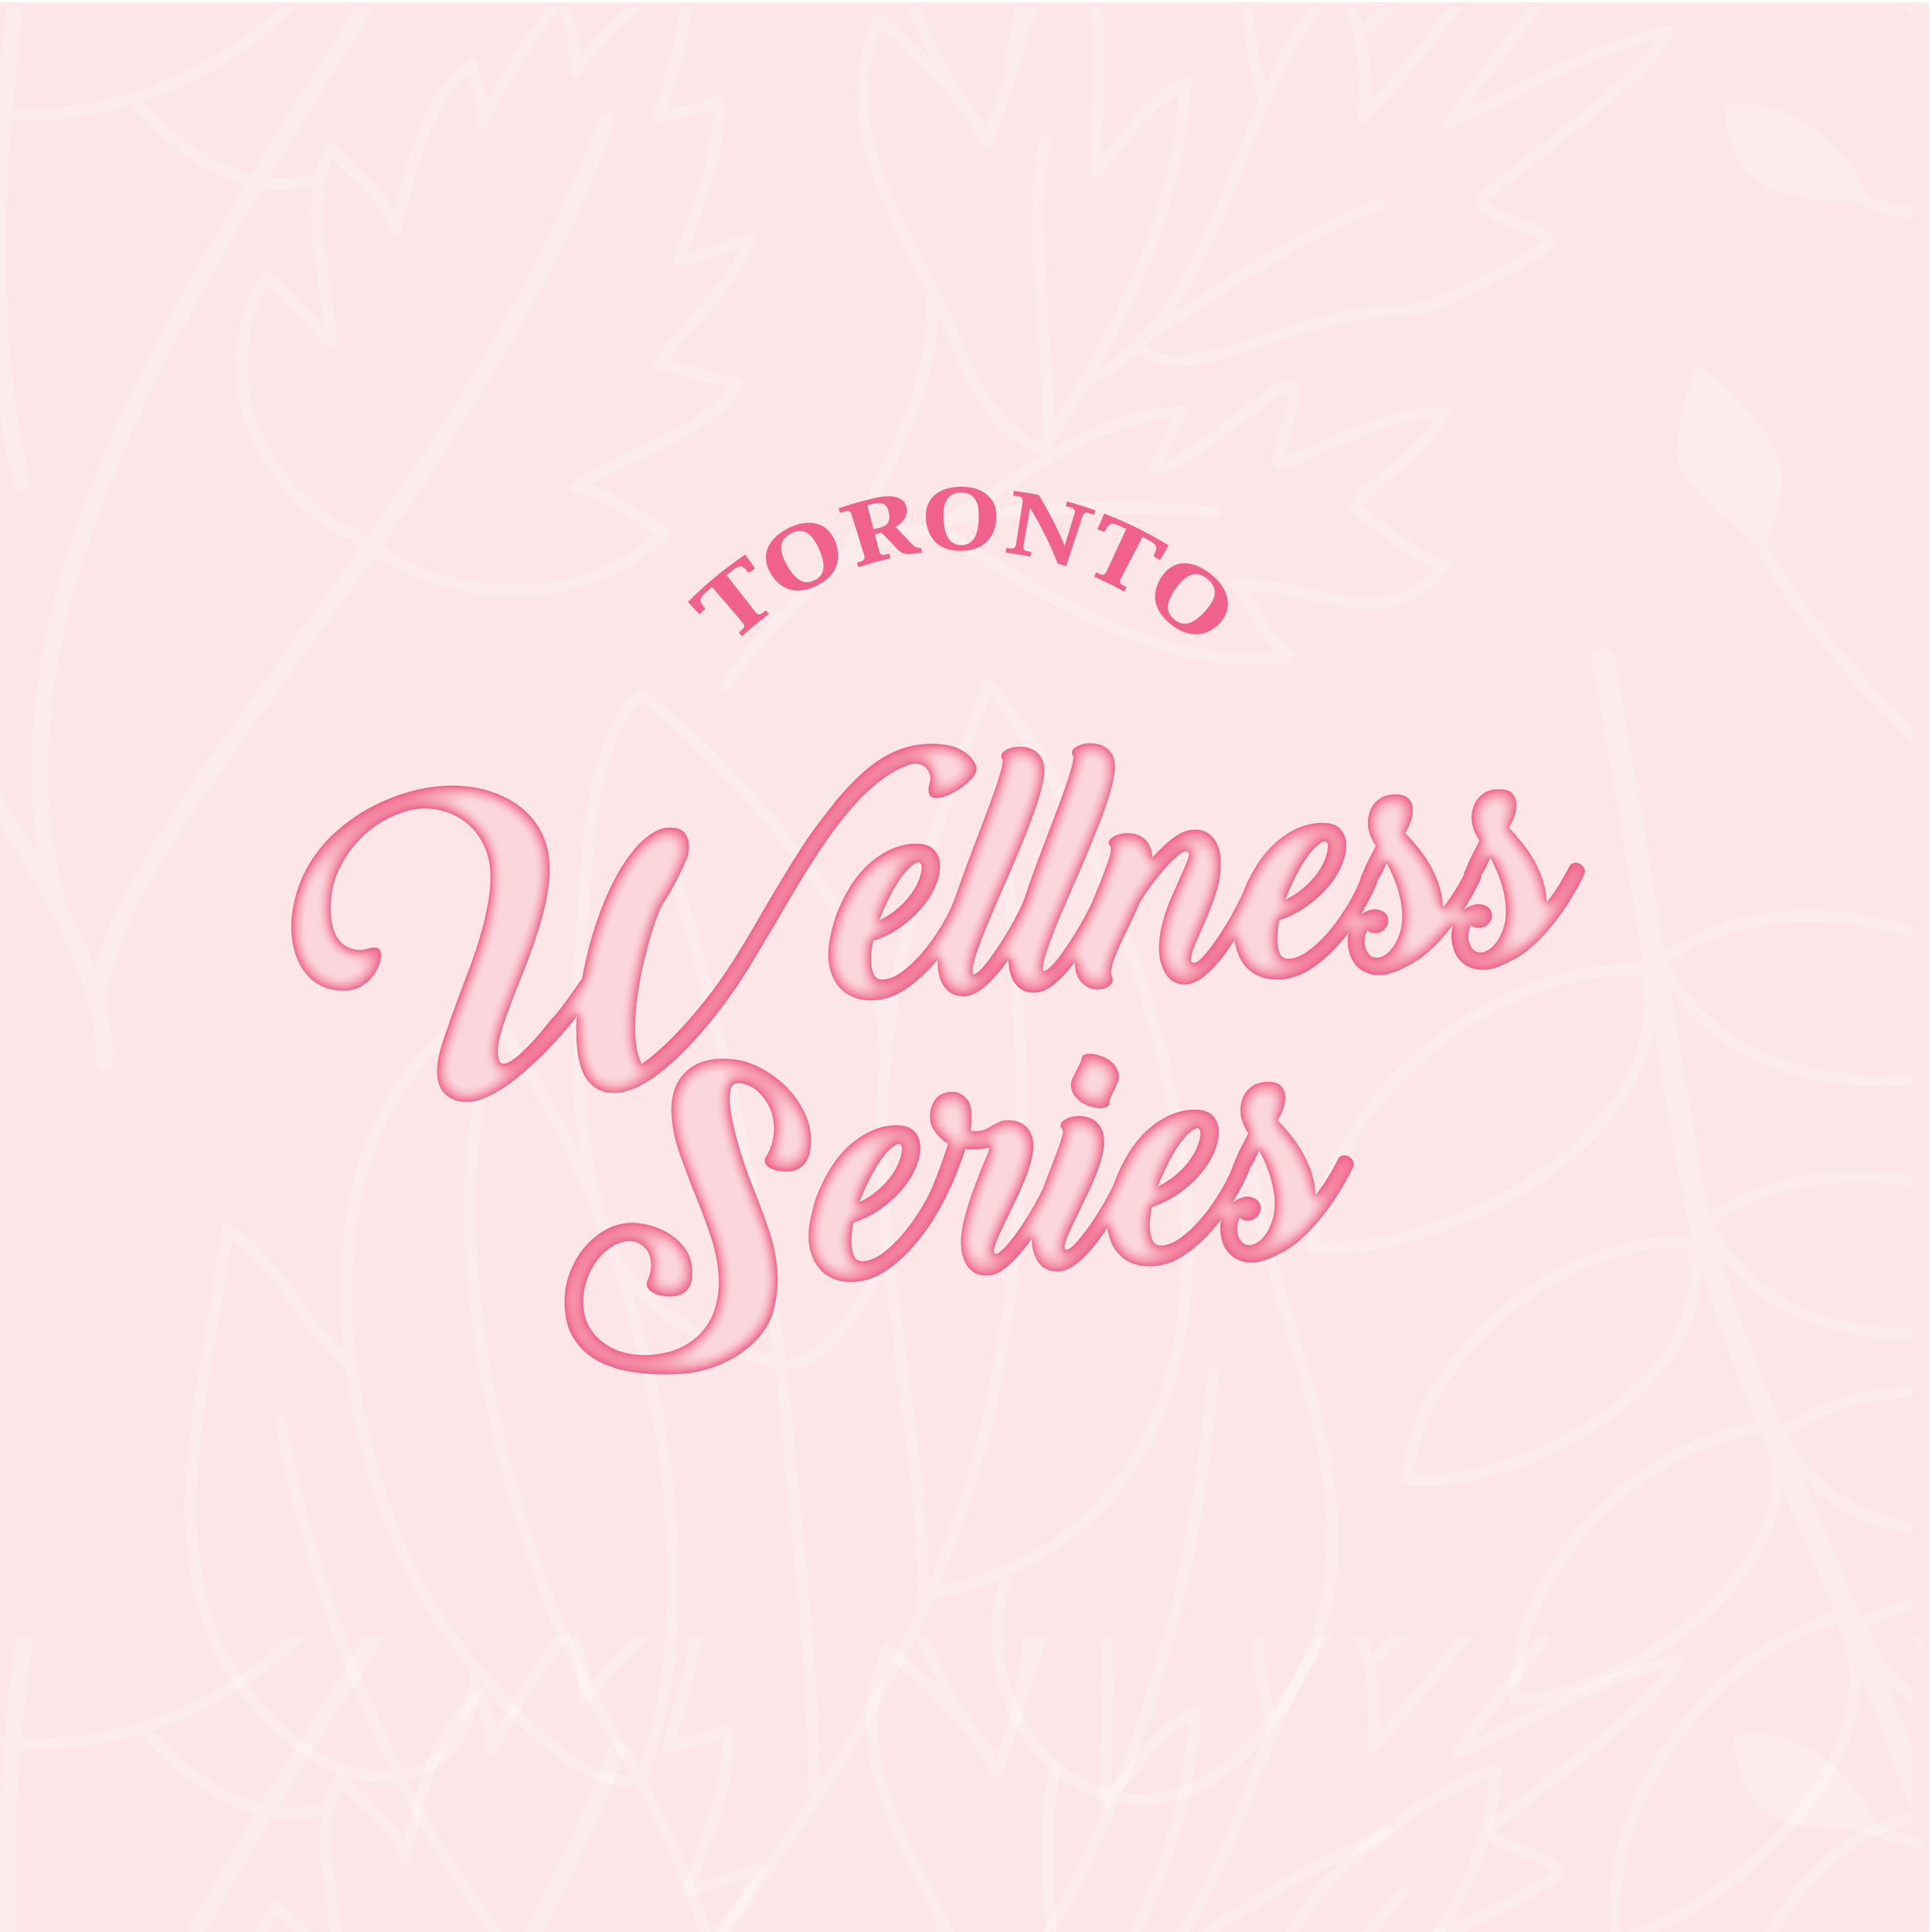 Ace_WellnessSeries_2019_YYZ-01.png